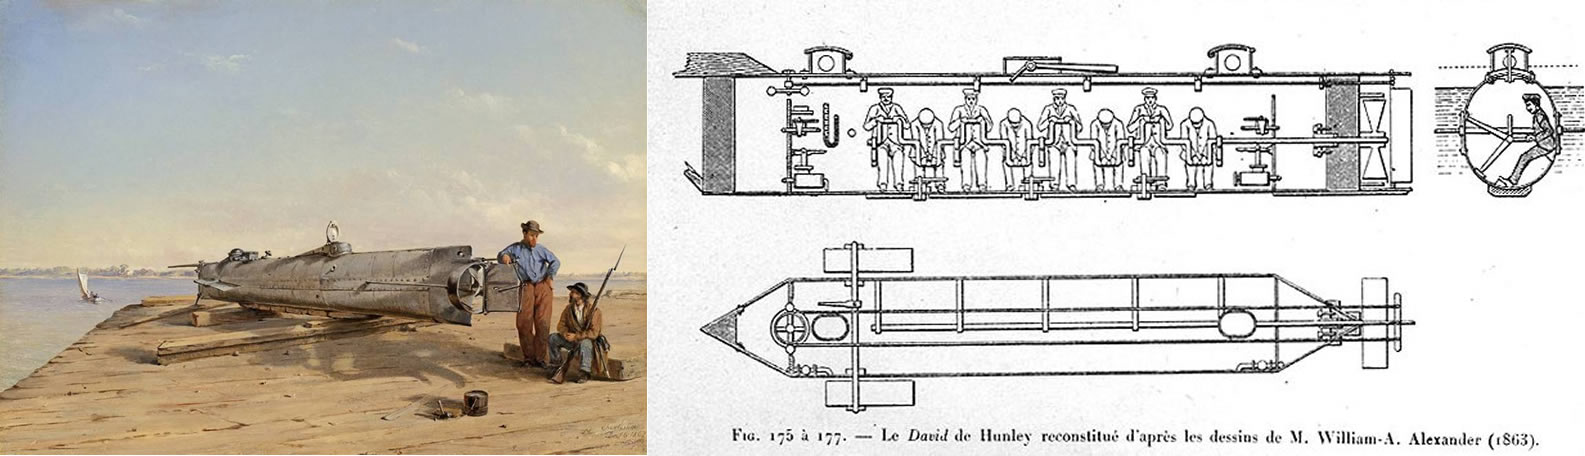 Inventors Killed by their own Inventions - Horace Lawson Hunley (1823-1863)